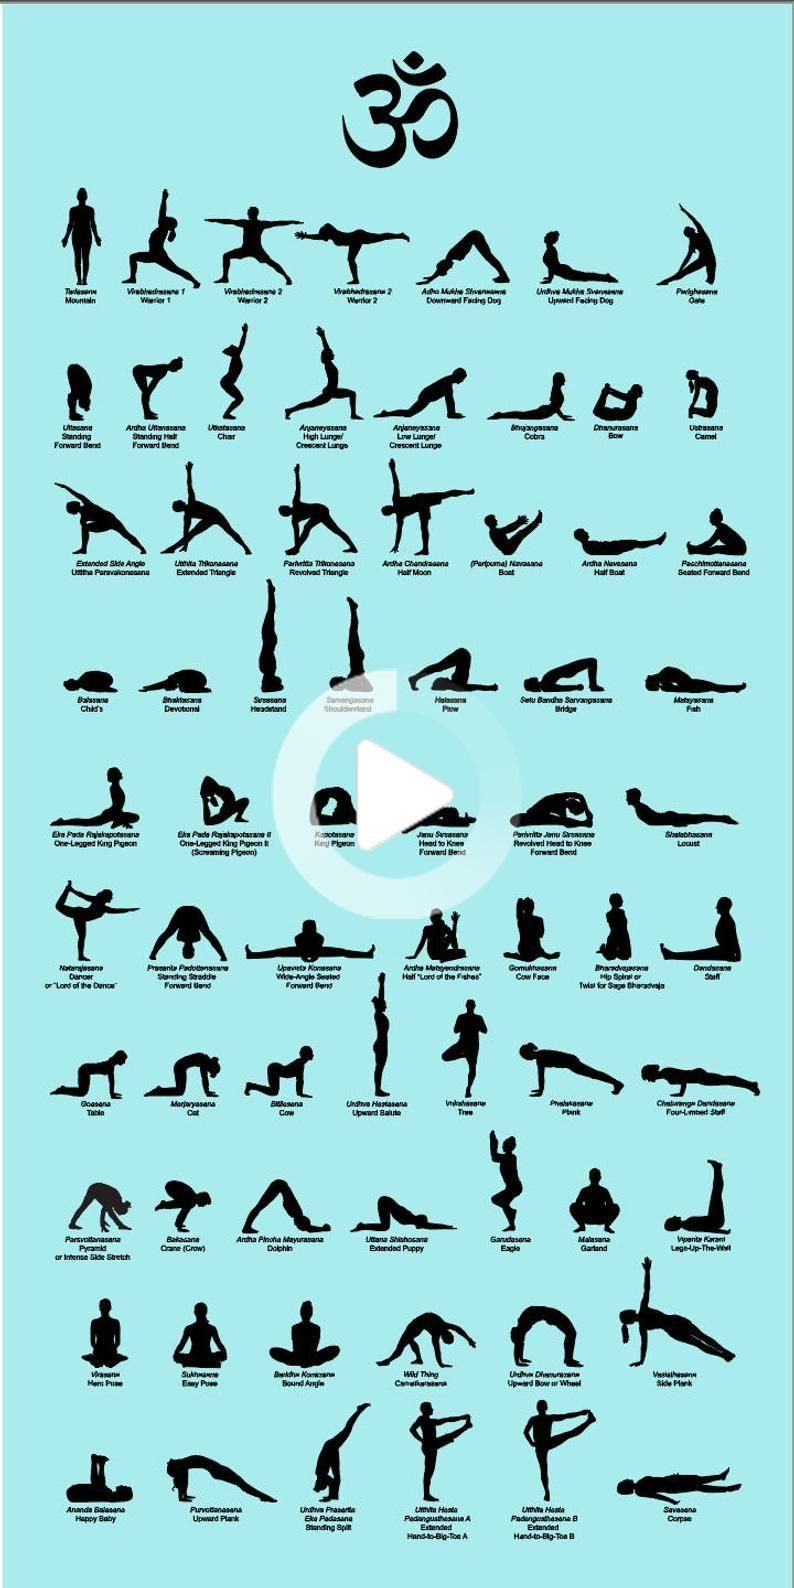 27+ Types of yoga poses with names ideas in 2021